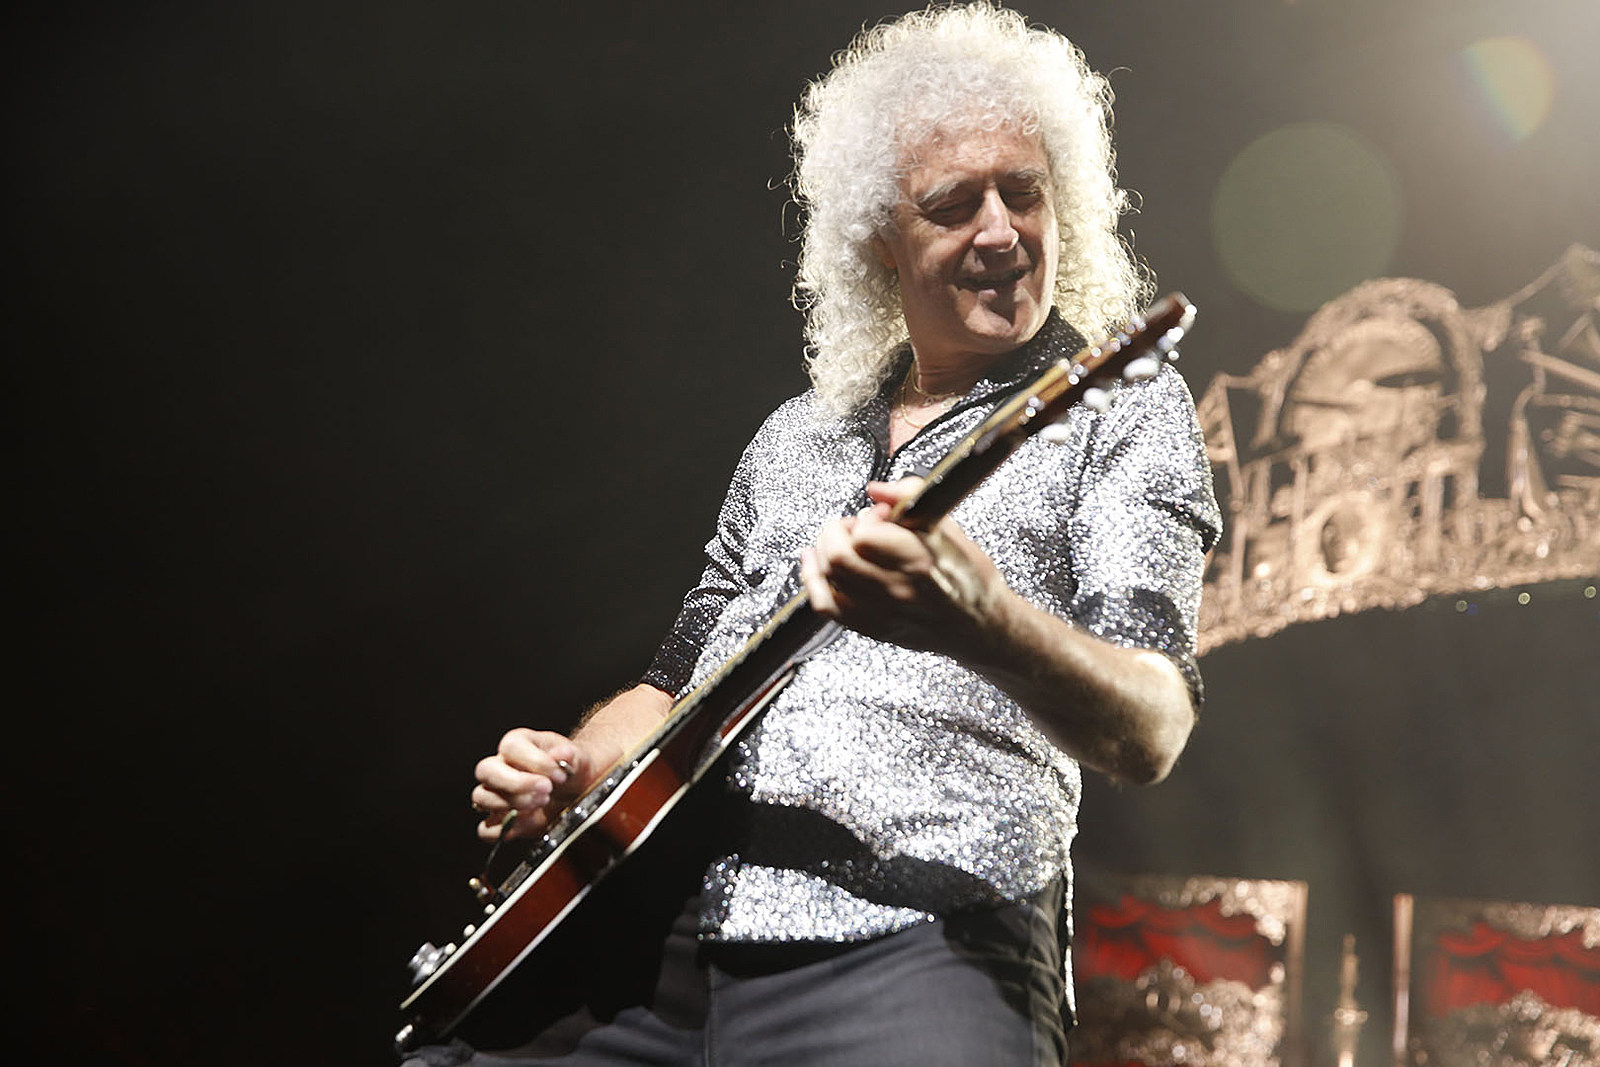 https://townsquare.media/site/295/files/2019/07/12Queen.jpg